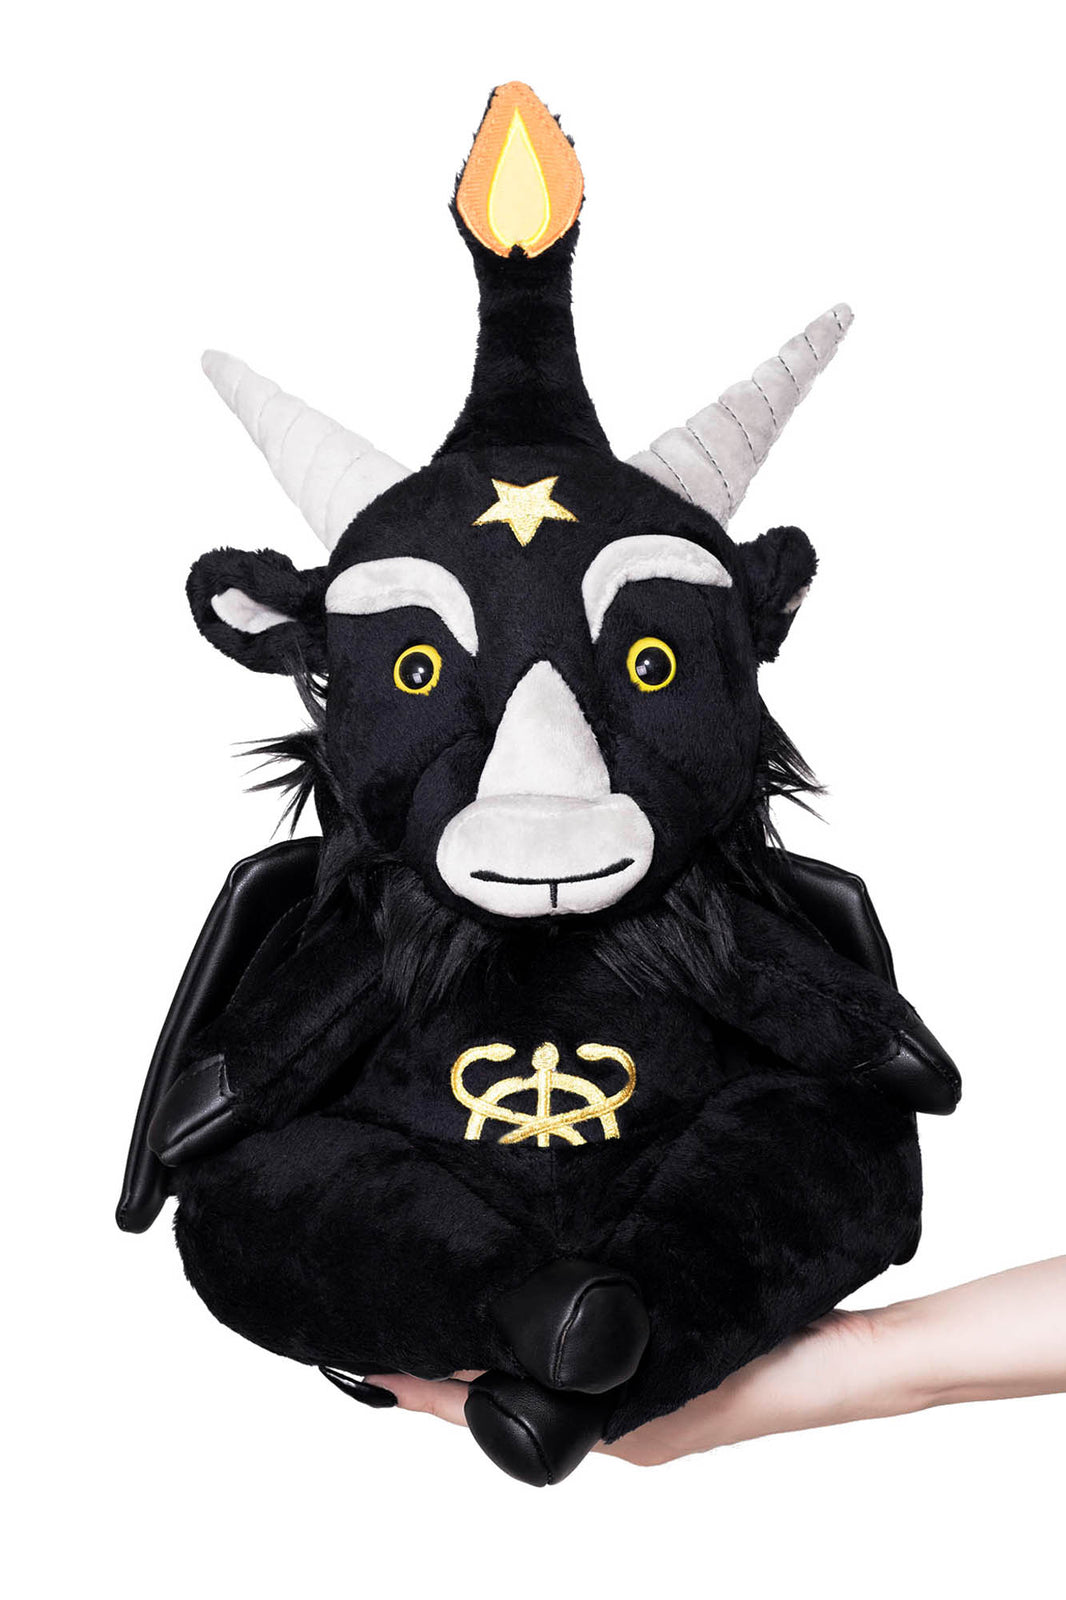 Dark Lord Plush Toy